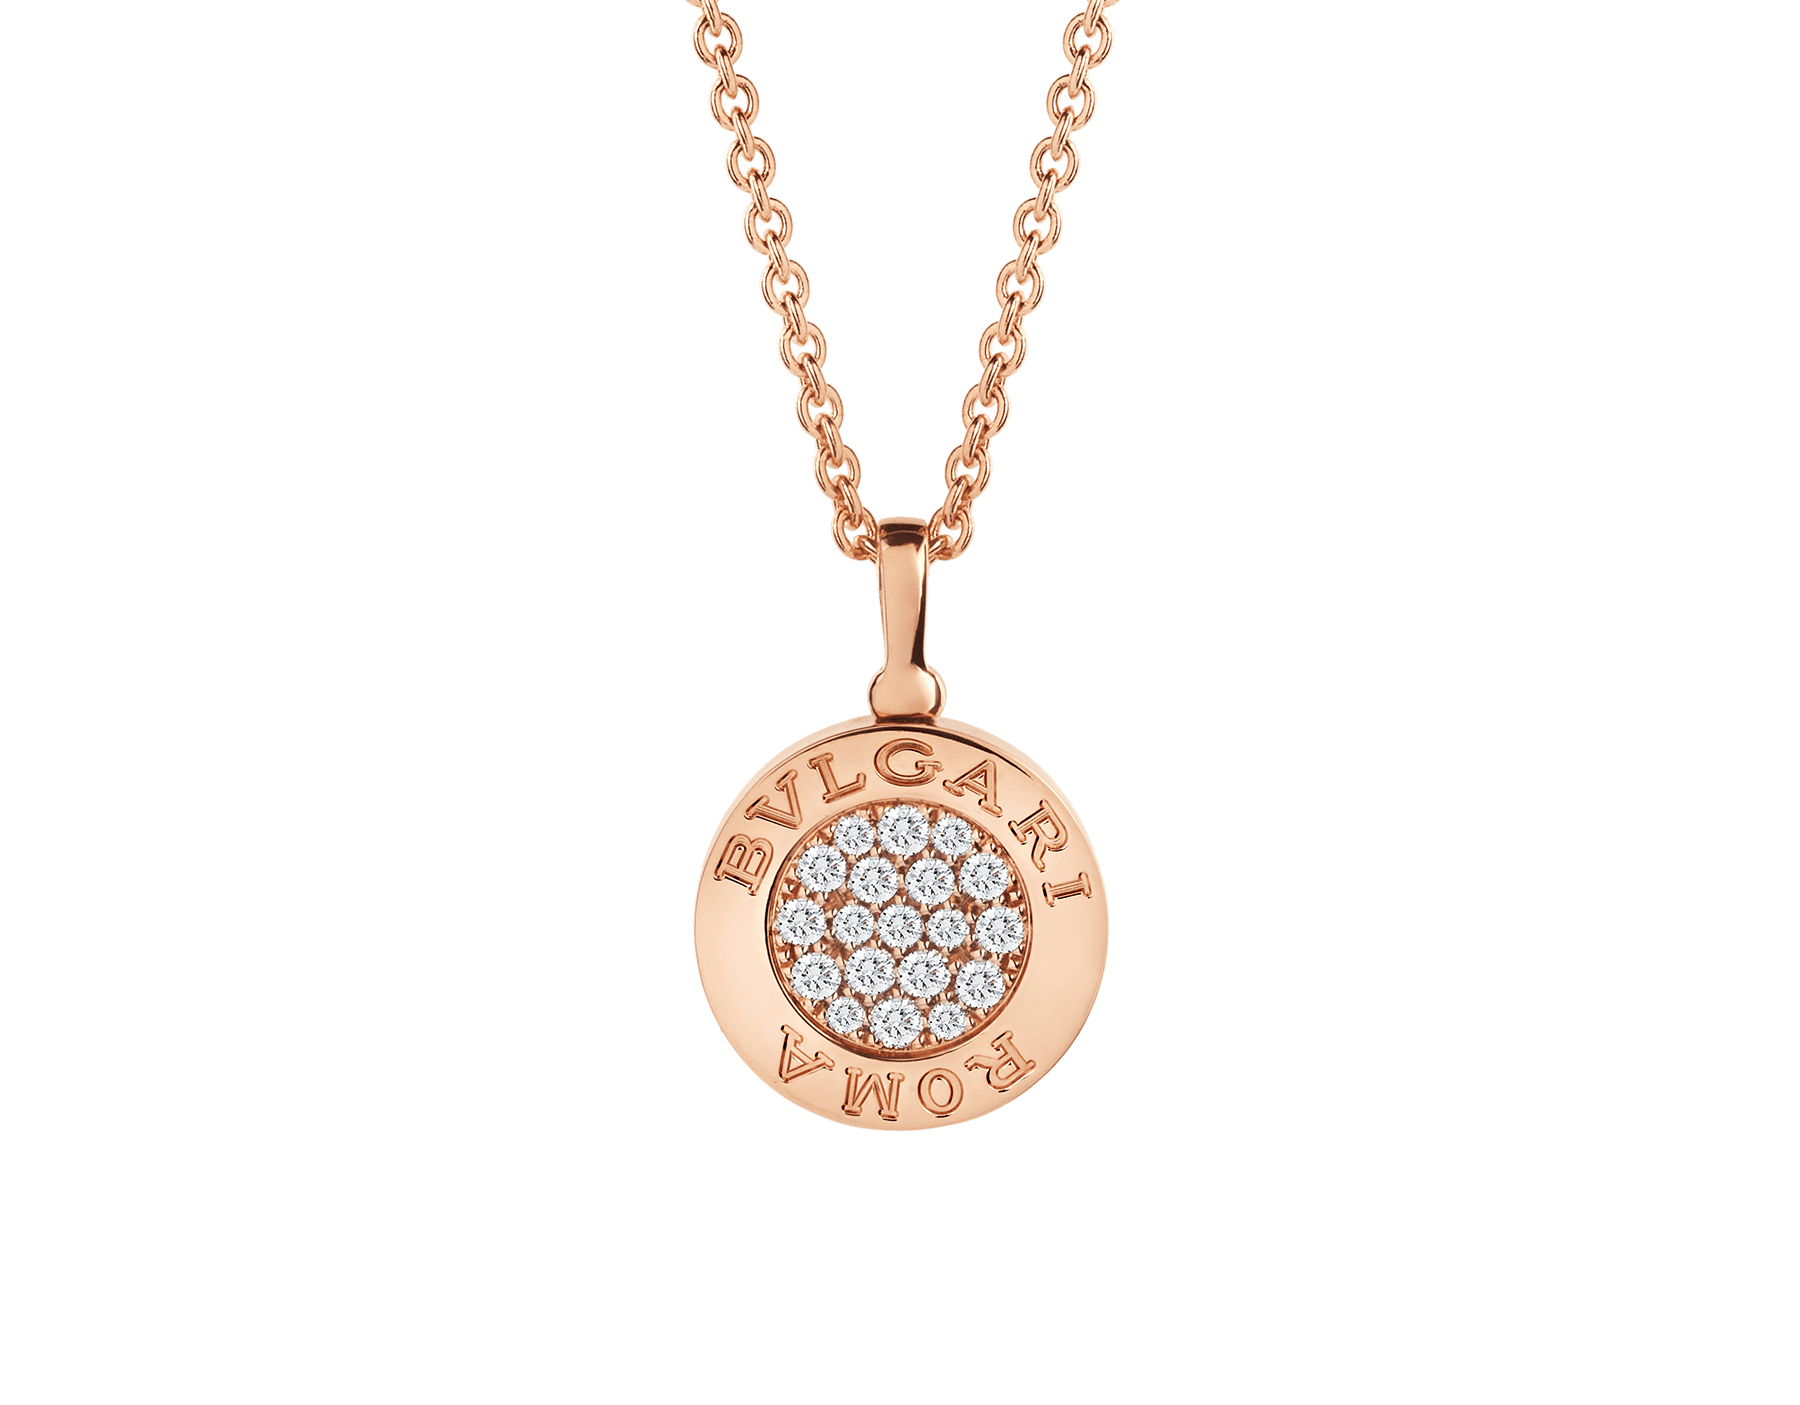 BVLGARI BVLGARI necklace with 18 kt rose gold chain and 18 kt rose gold pendant set with onyx and pavé diamonds 350815 image 1